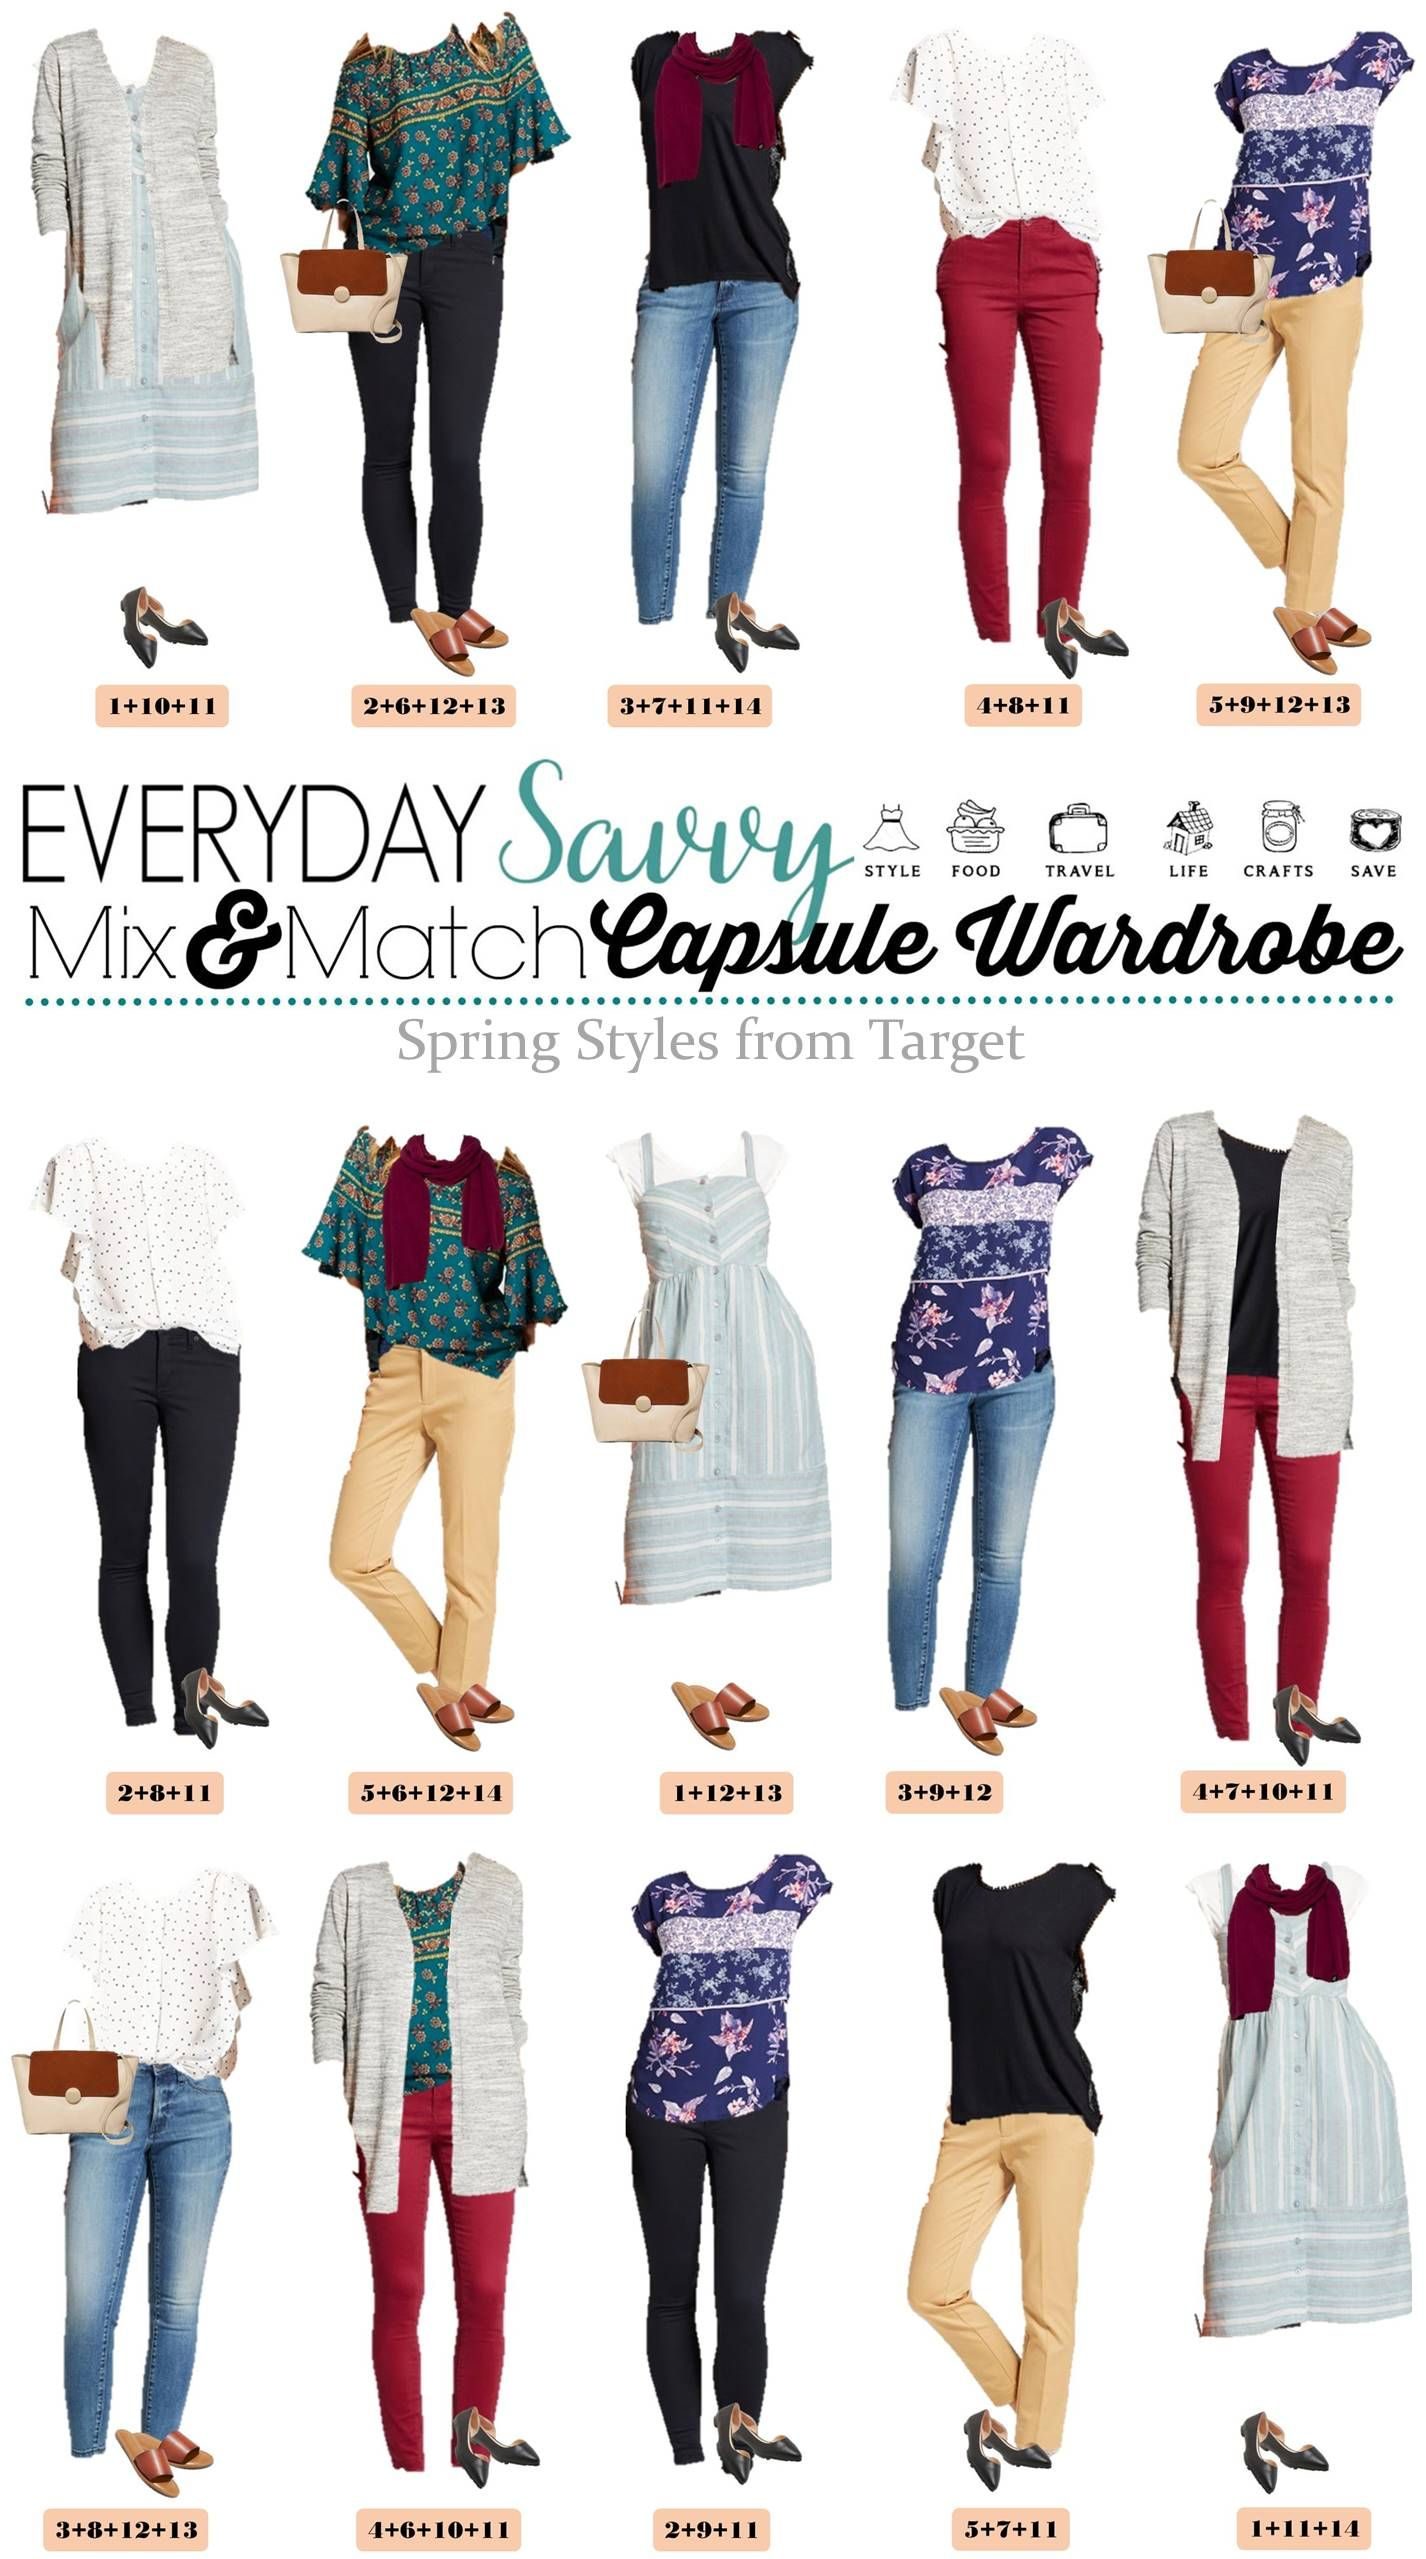 521c4c8a85 Fun Spring Target Capsule Wardrobe updated for 2018. Casual and cute mix  and match outfits that are fun and frugal.  target  capsulewardrobe